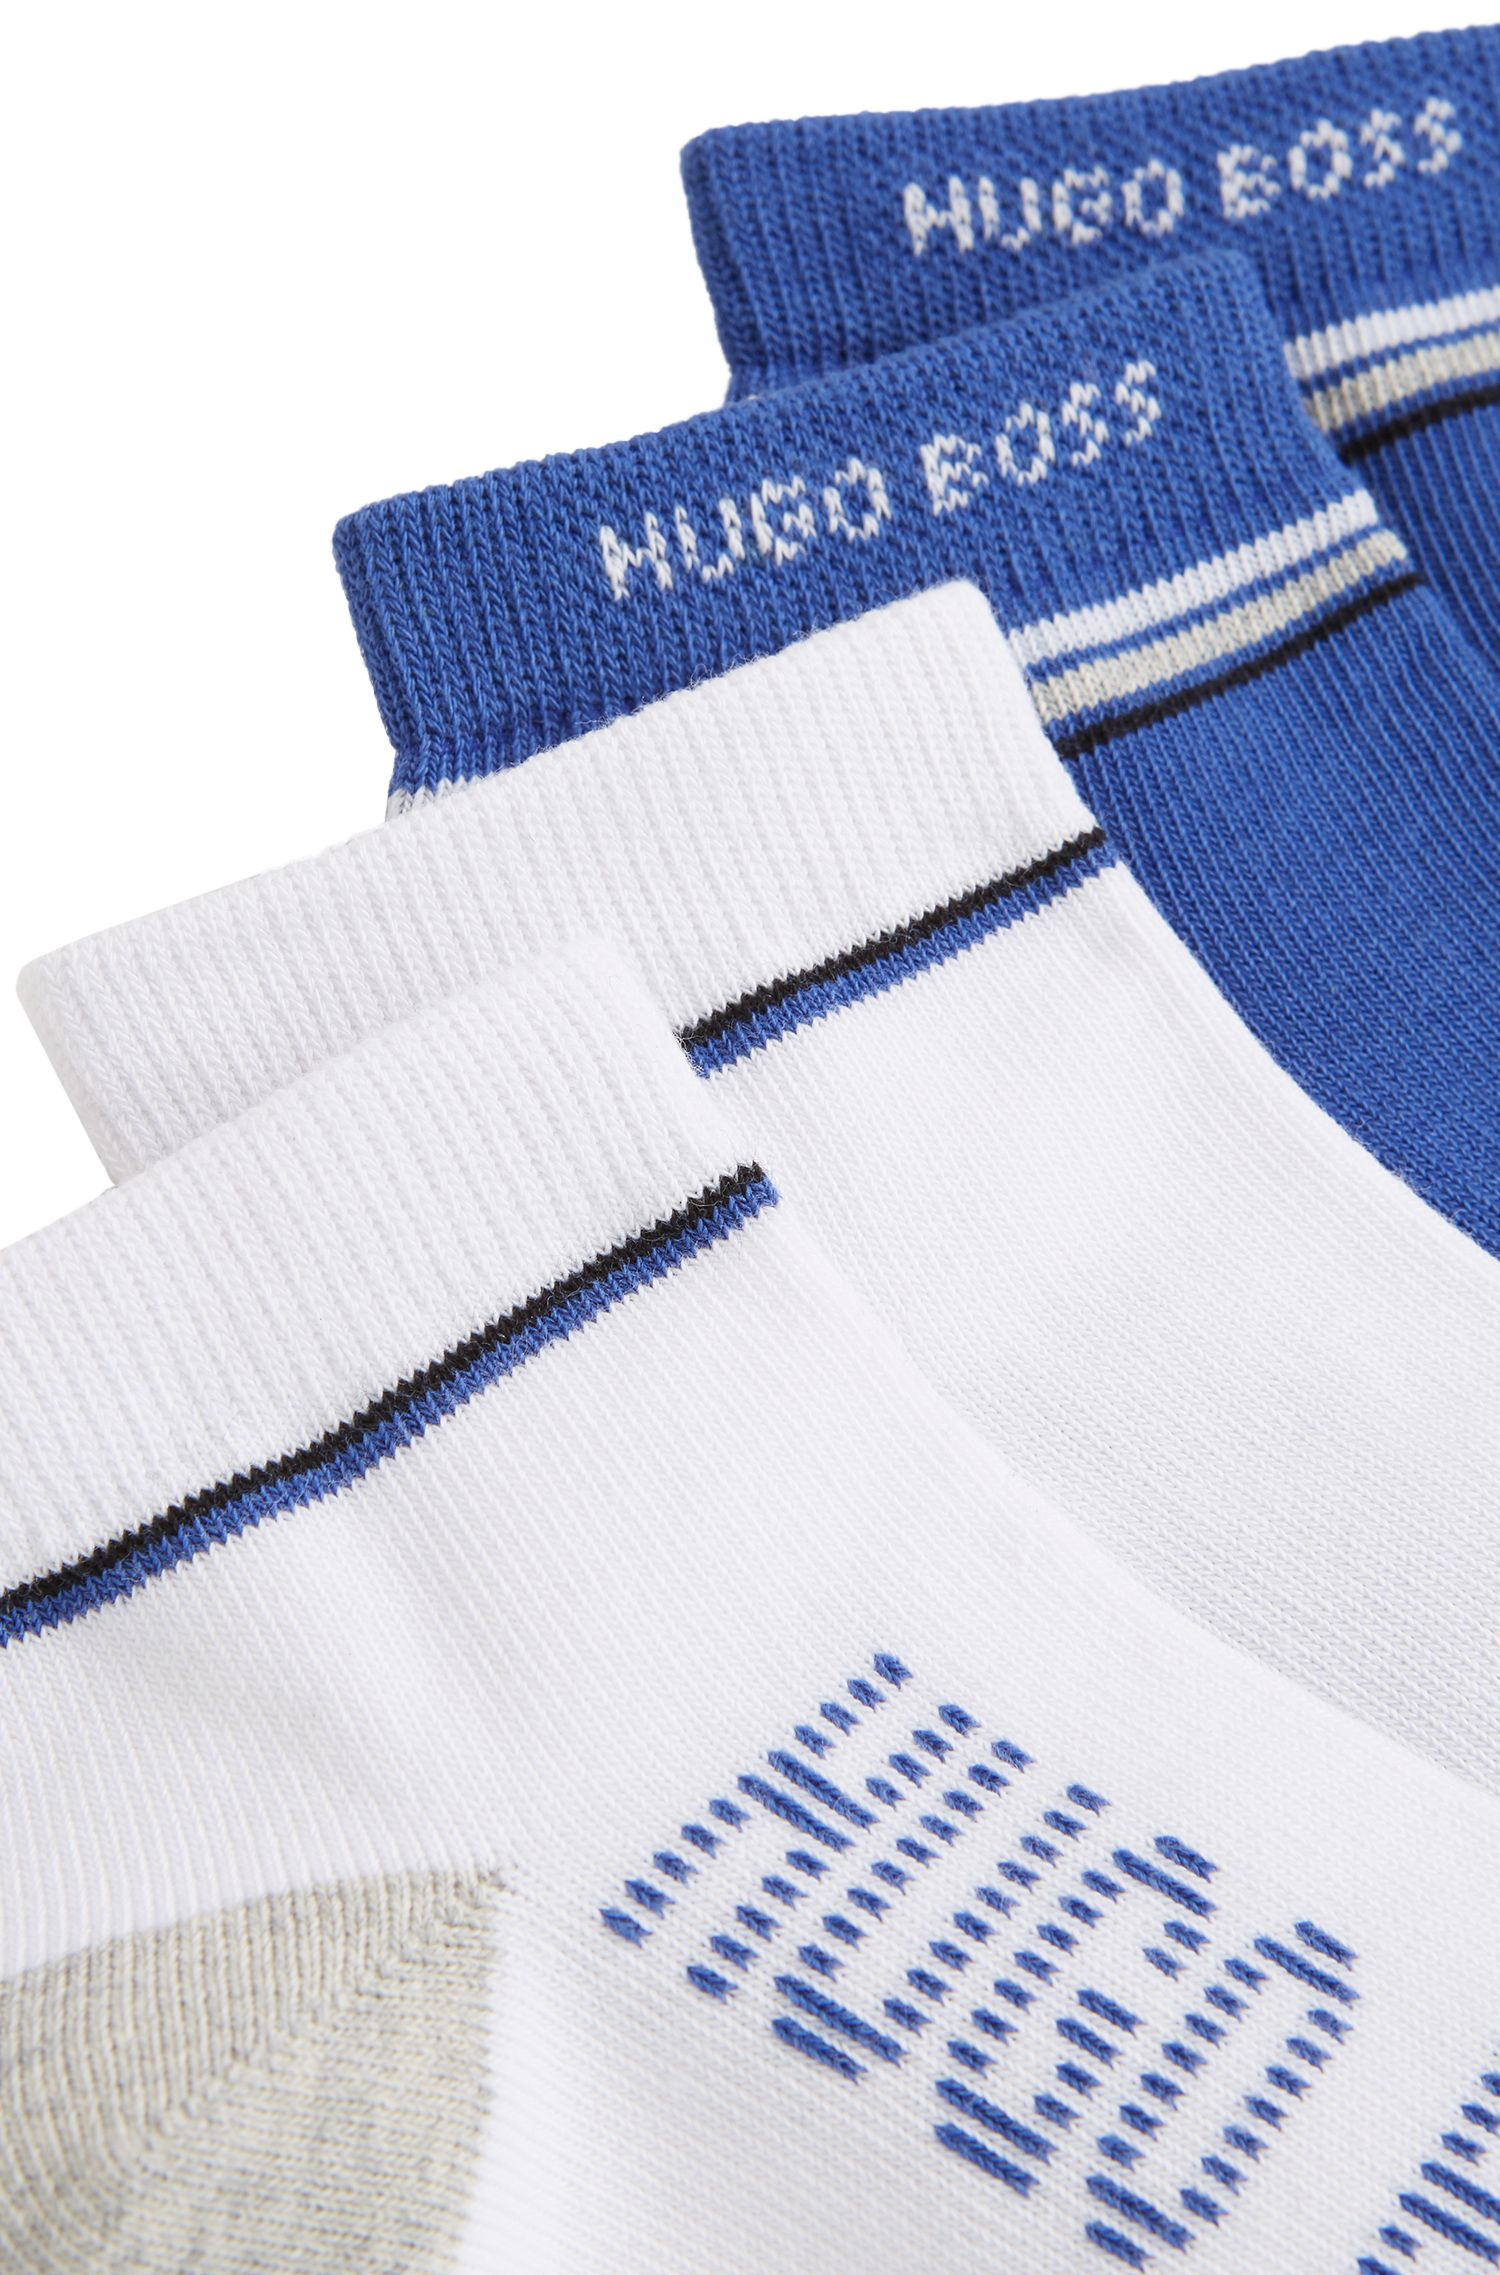 Kids' two-pack of ankle socks in a stretch-cotton blend